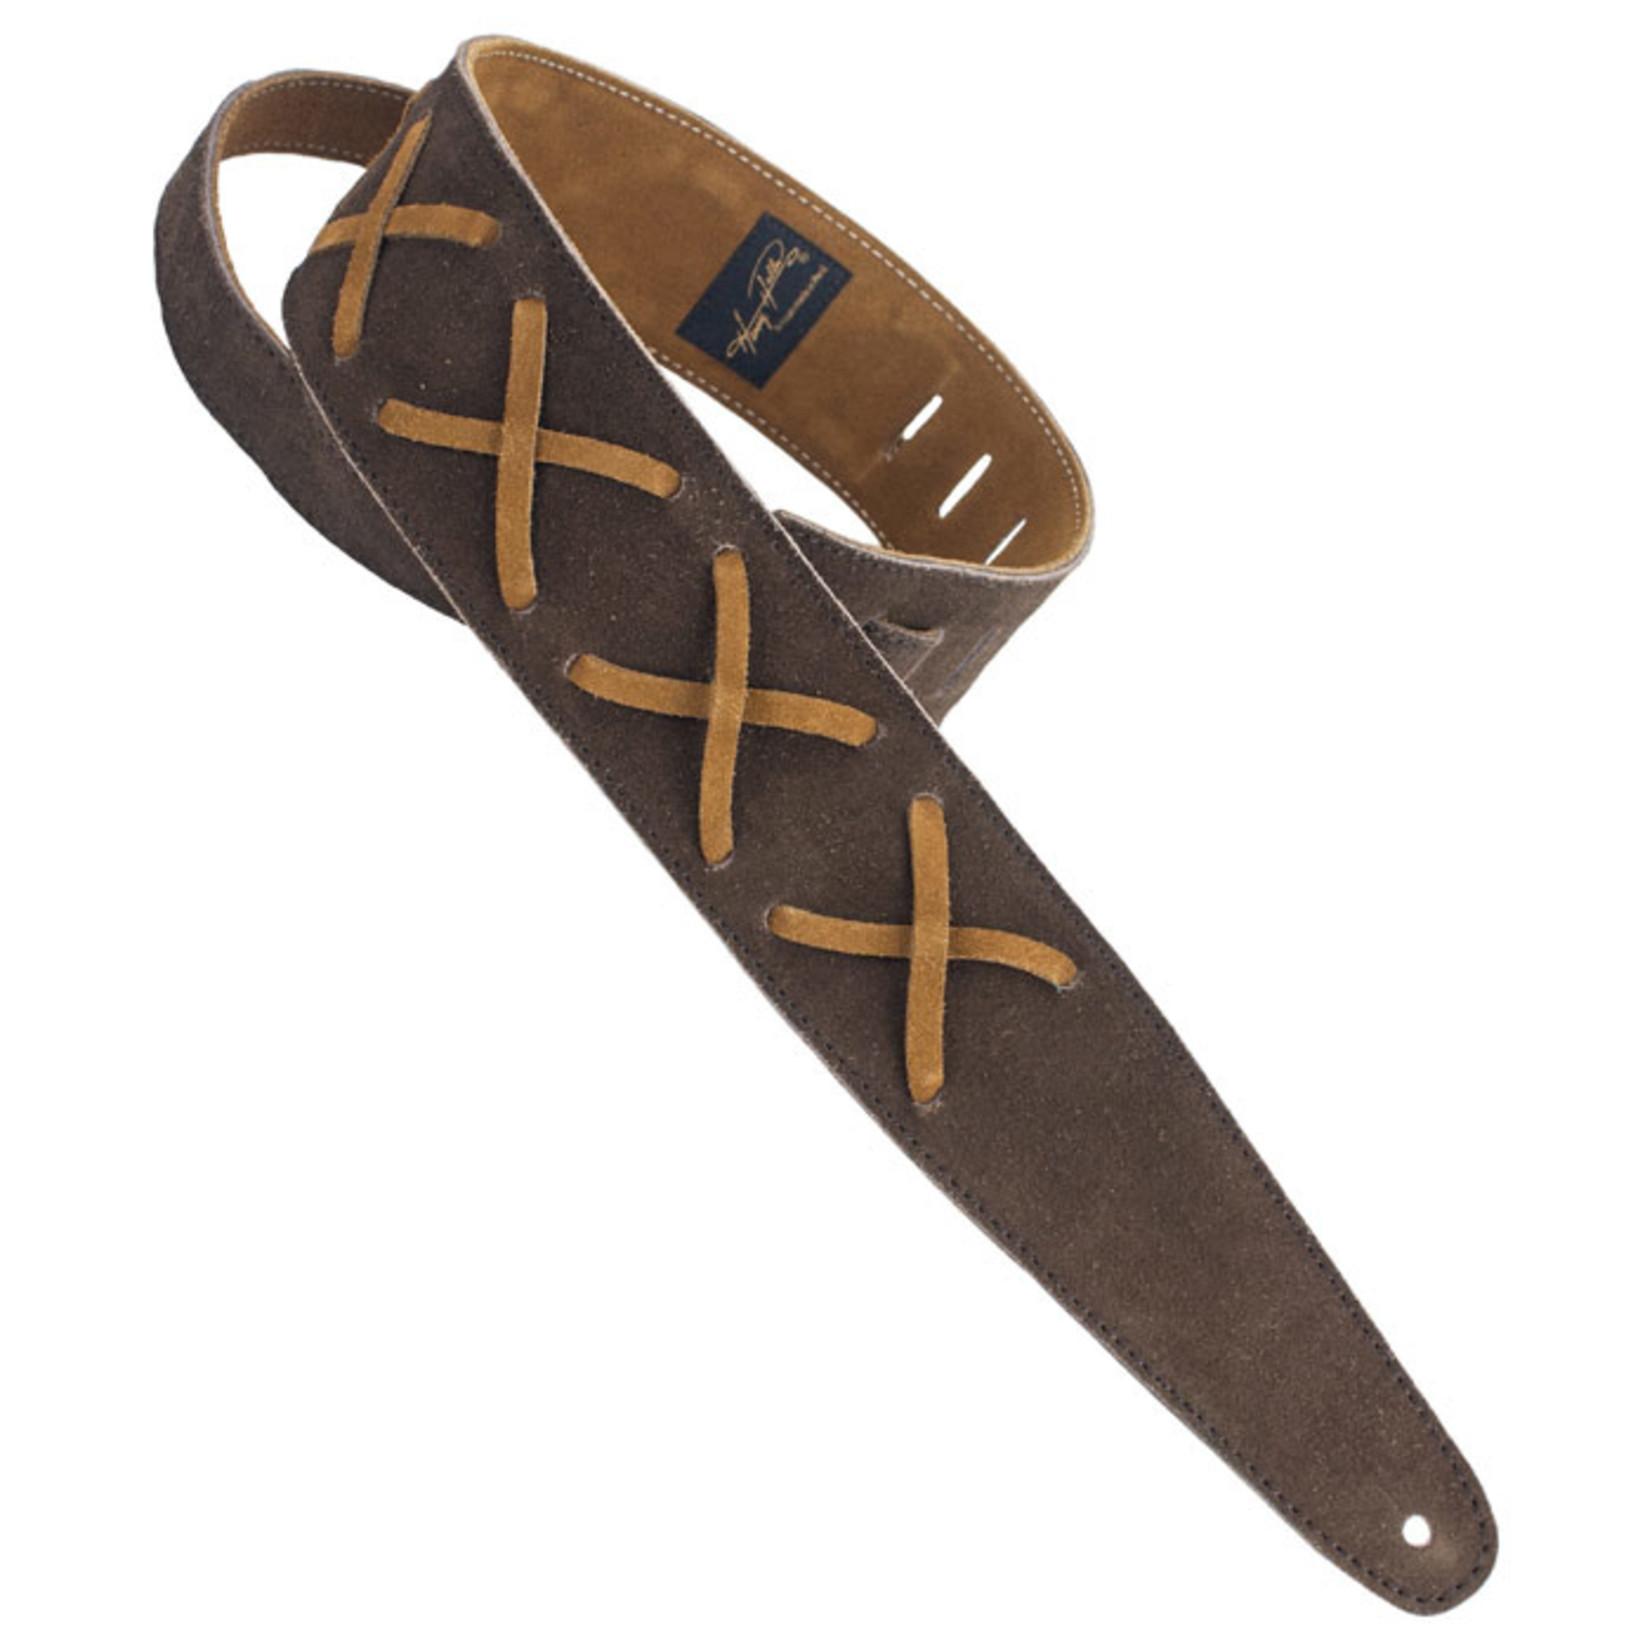 "Henry Heller Henry Heller Premium Suede 2.5"" Guitar Strap with Gilmour-Inspired Leather Lace Xs, Chocolate/Brown"